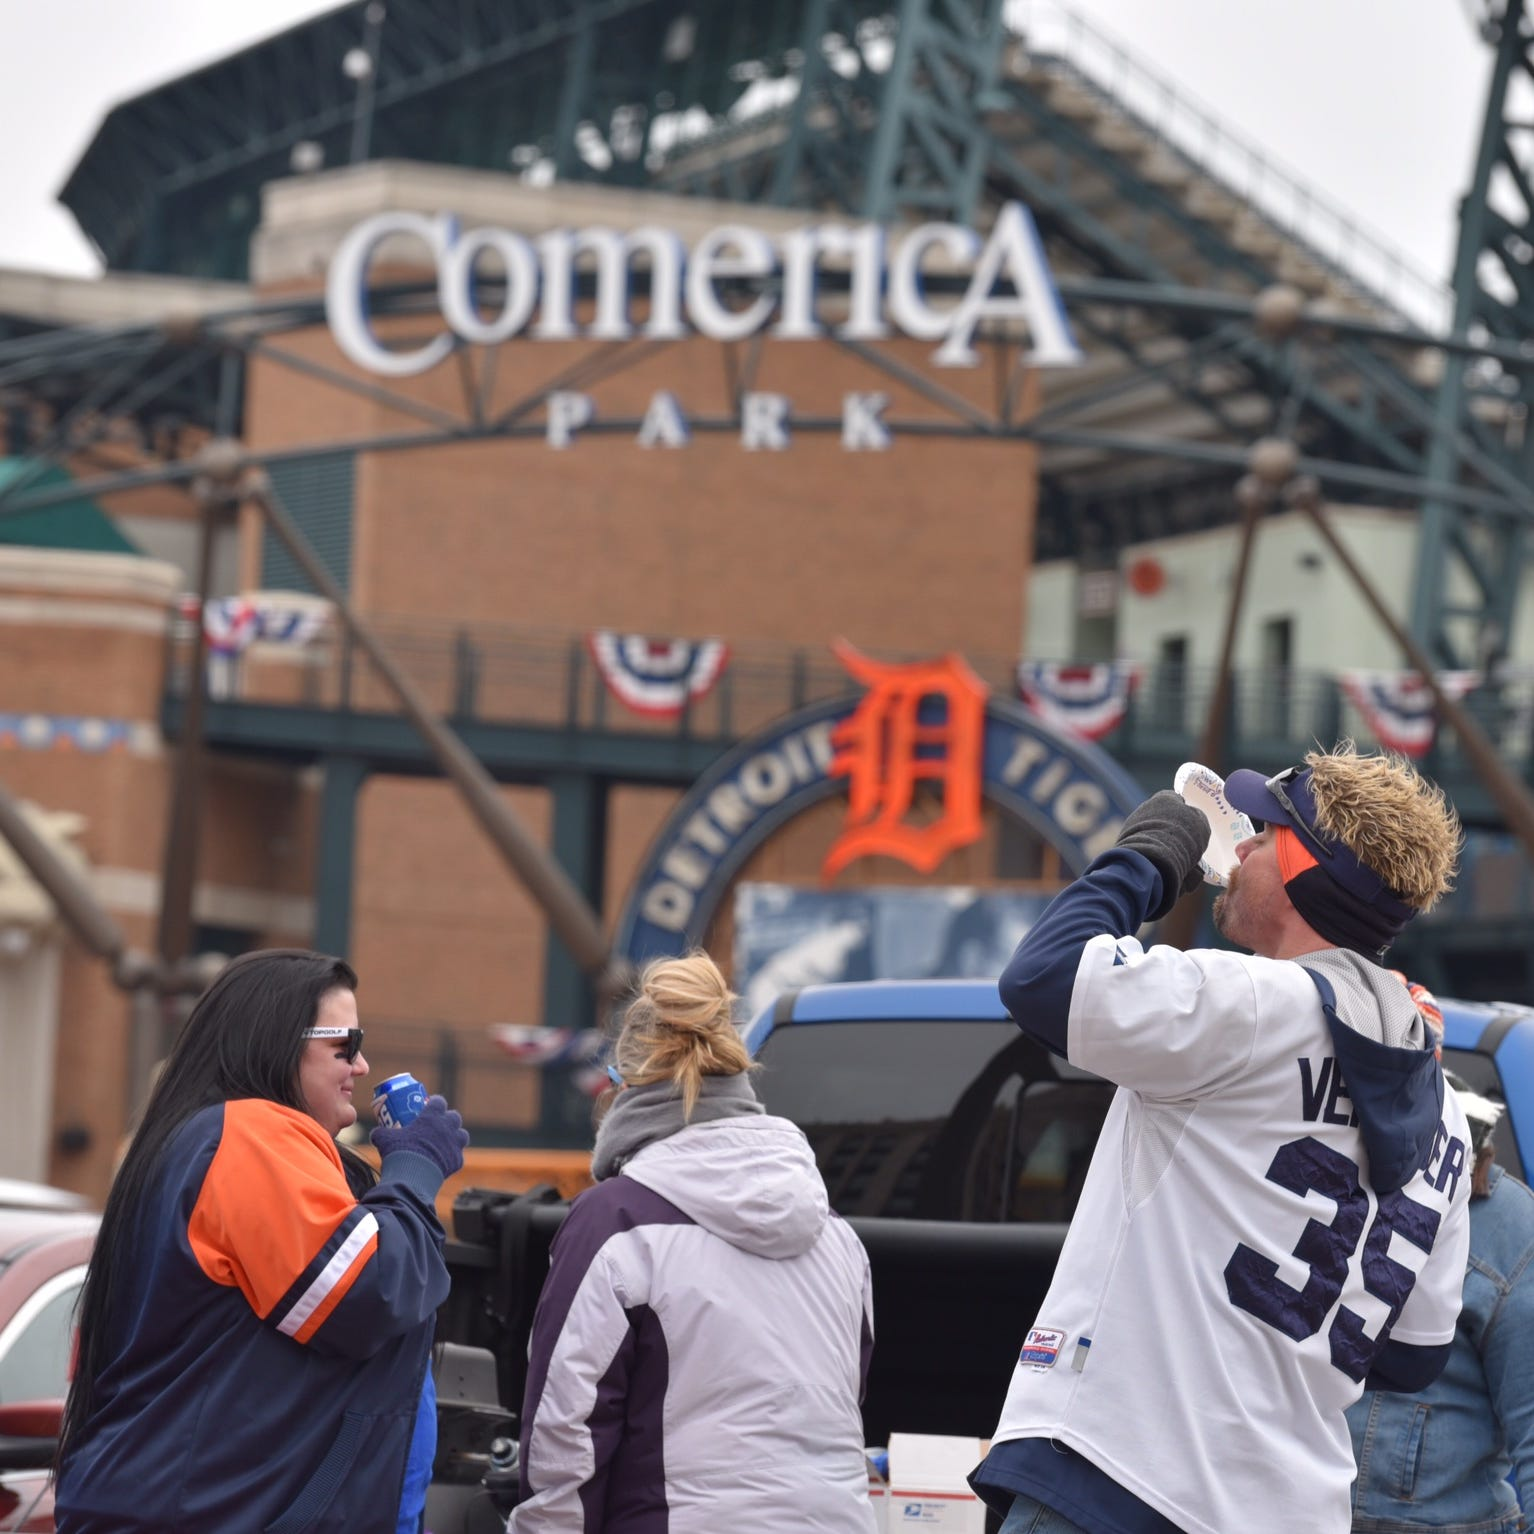 Live updates: Tigers vs. Royals under way on Opening Day